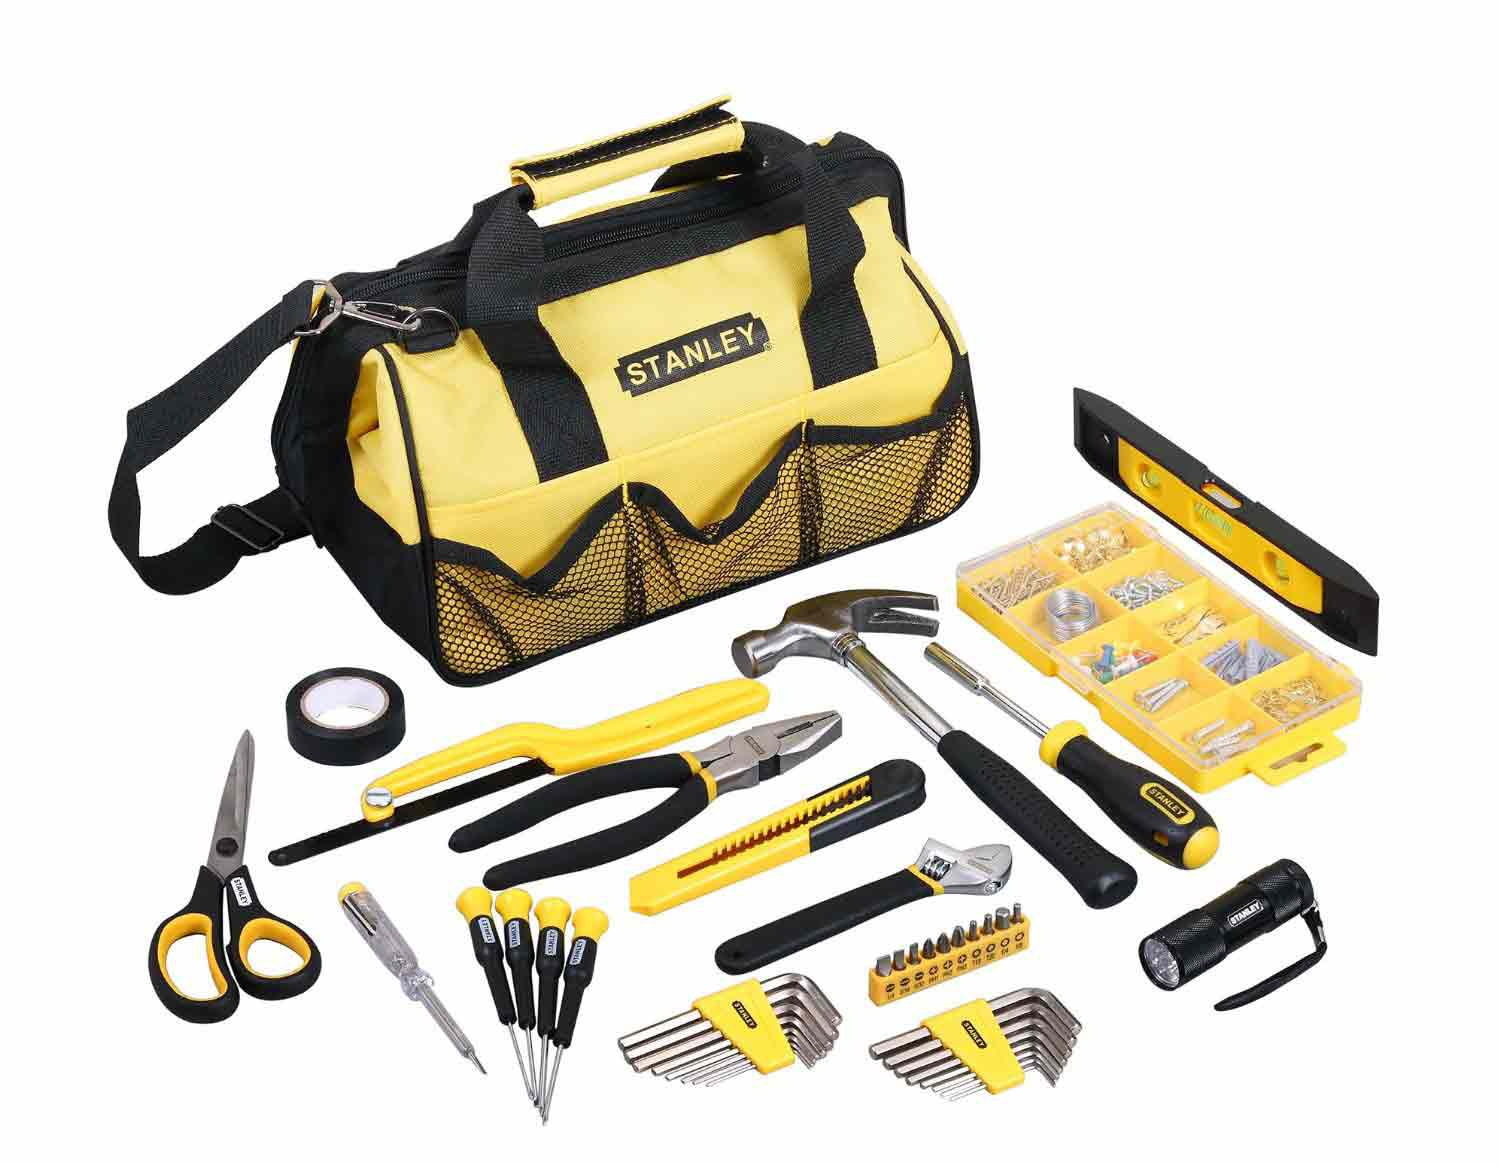 Stanley - Specialty Tools - 71-996-IN Ultimate Tool Kit (42 PC)